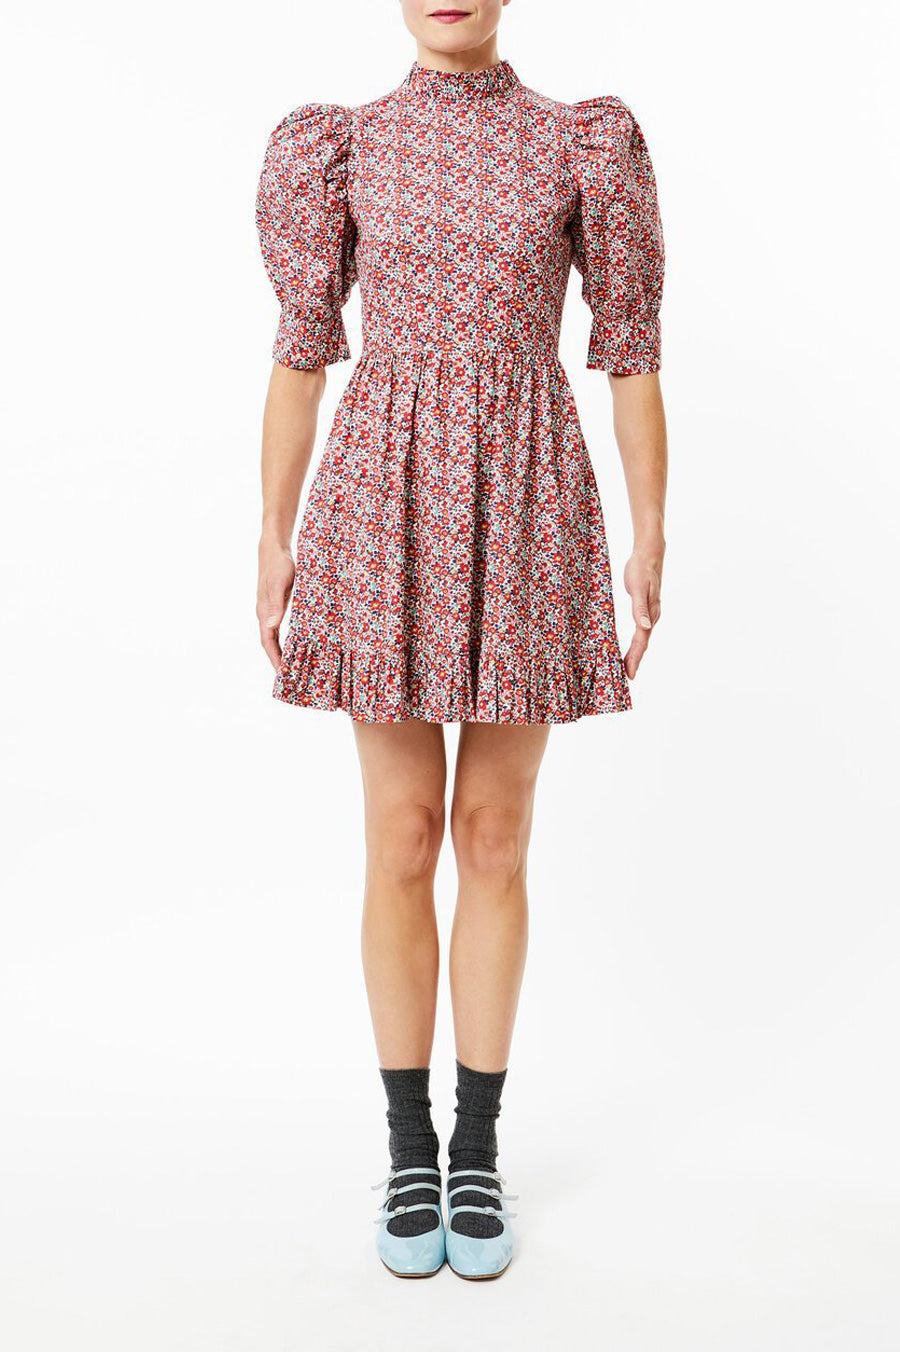 Susie Mini Dress in Red Floral Print